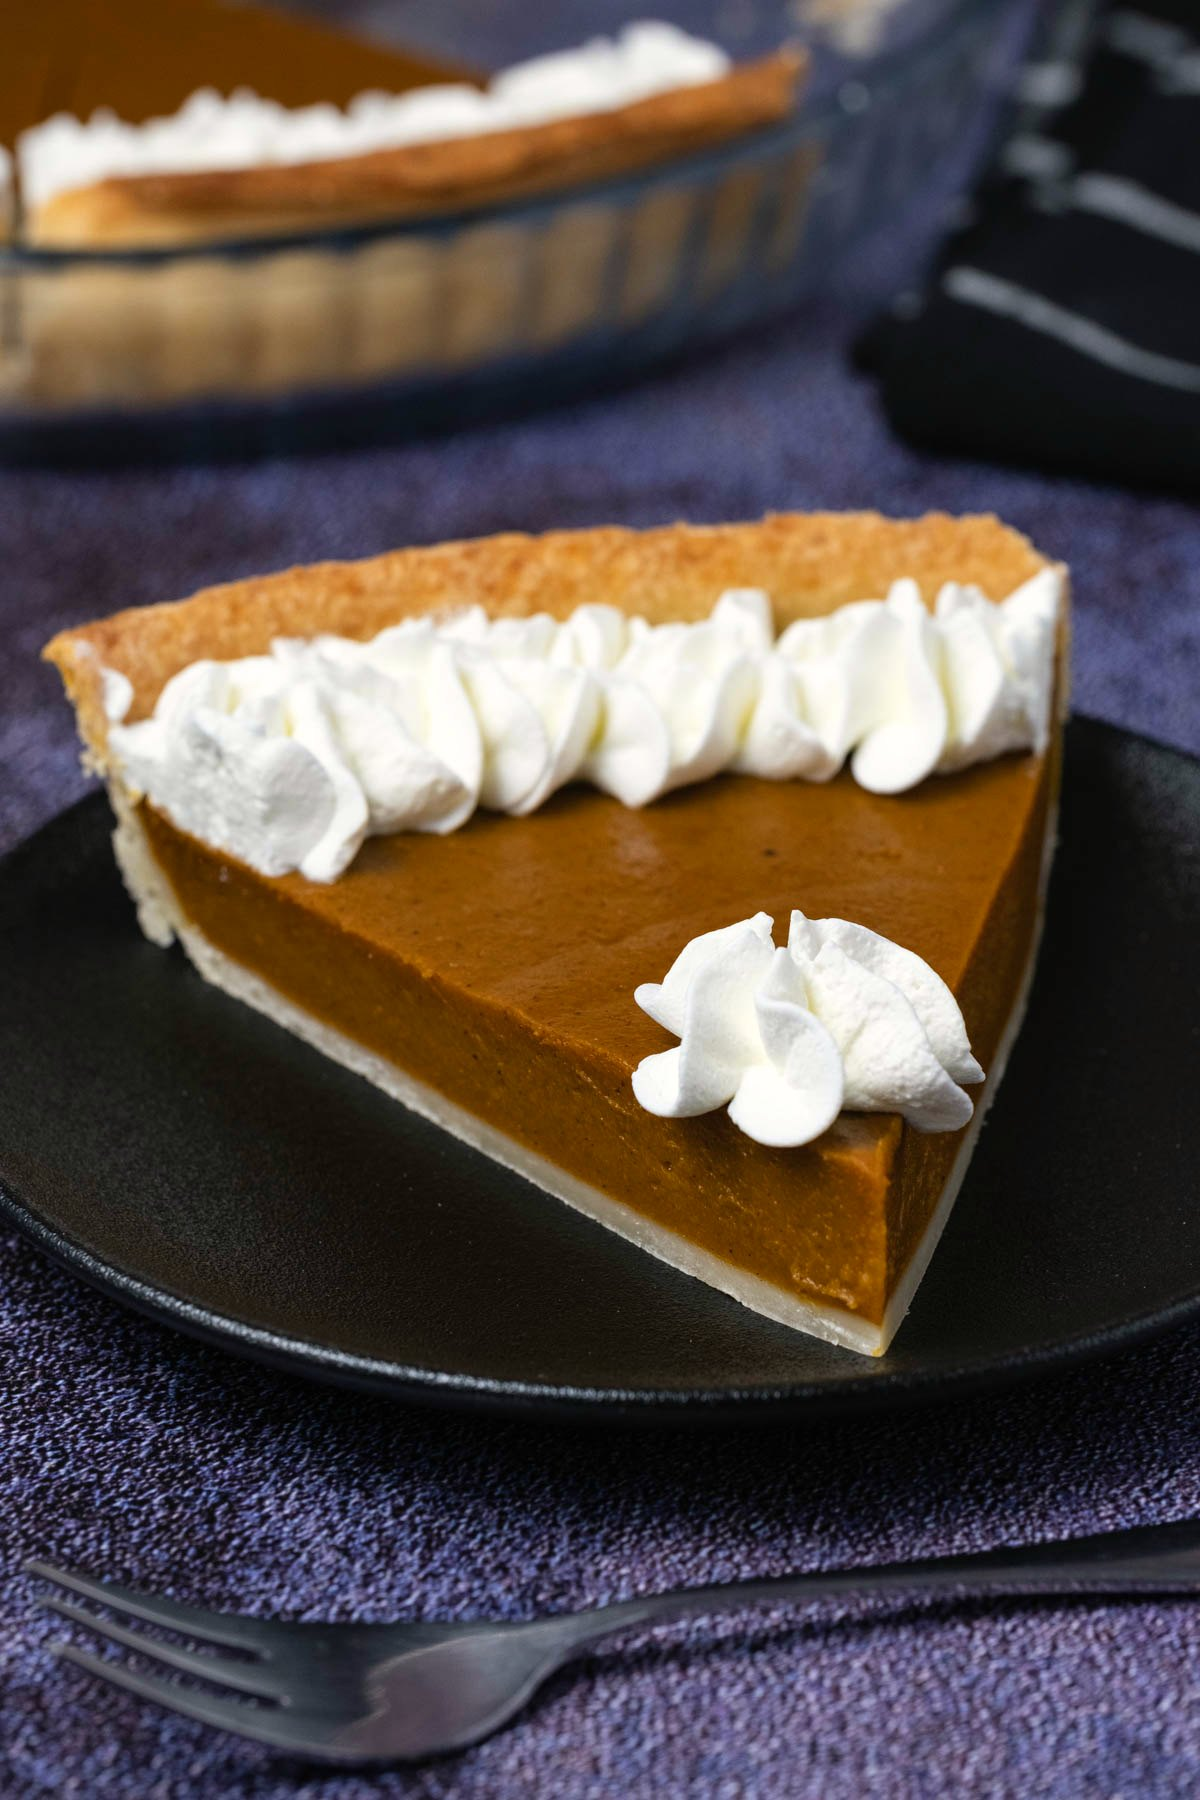 Slice of pumpkin pie with whipped cream on a black plate.